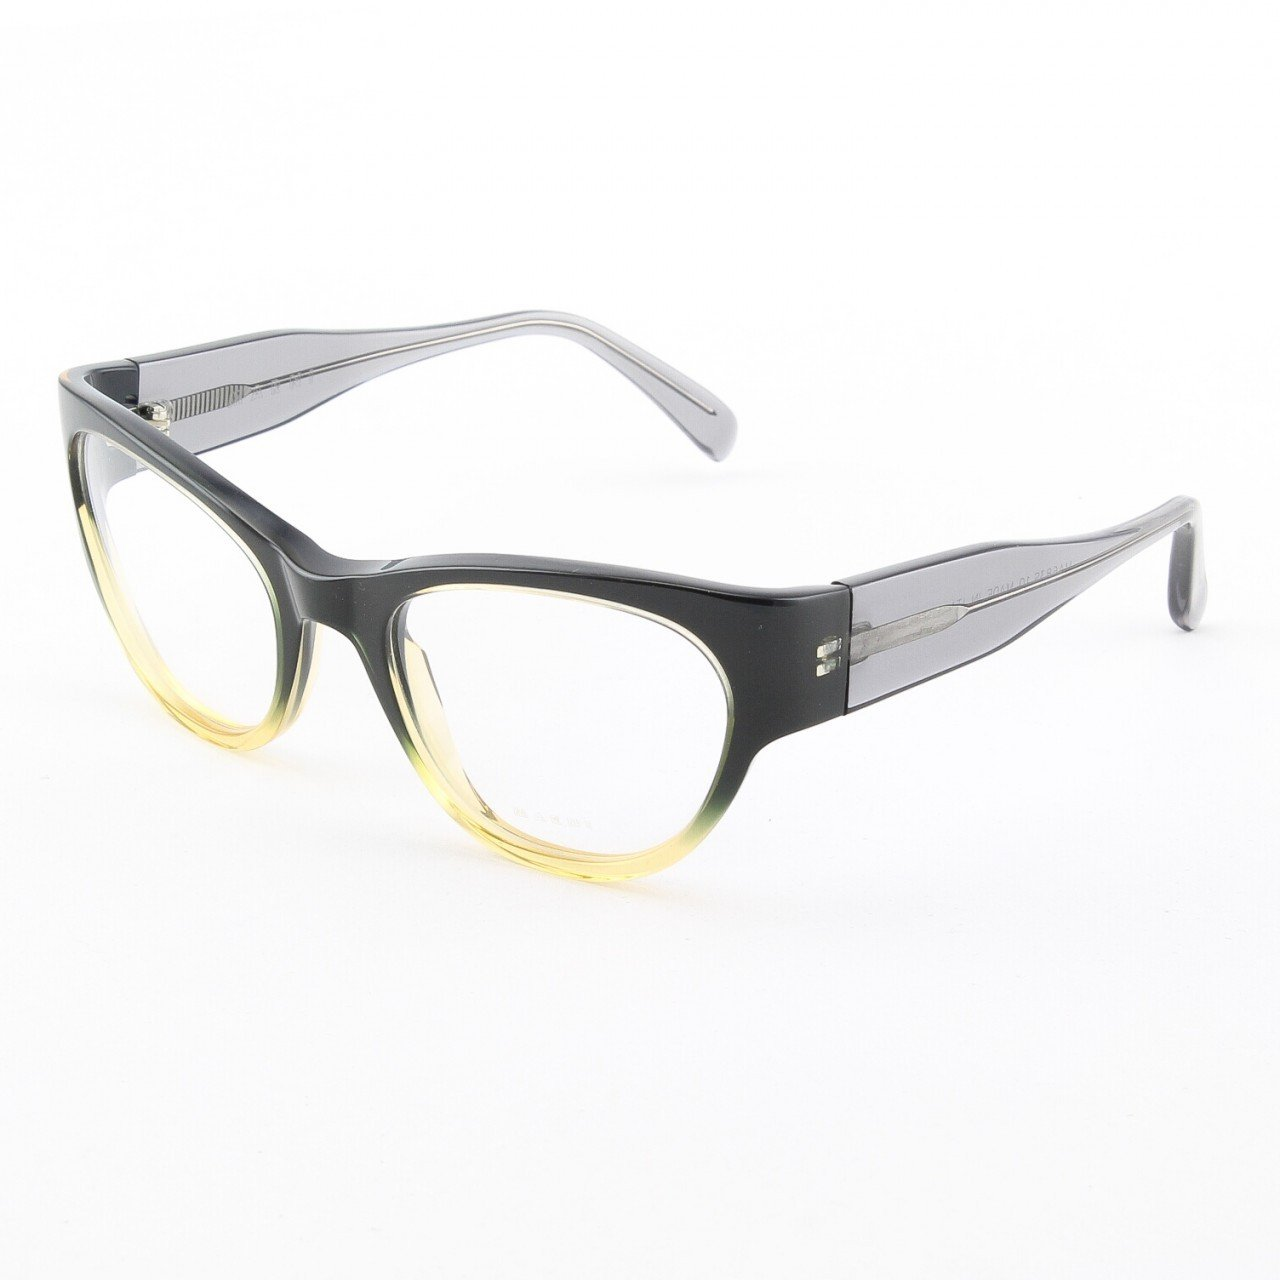 Marni MA683S Eyeglasses Col. 10 Midnight Navy Graduation to Light Yellow with Clear Lenses